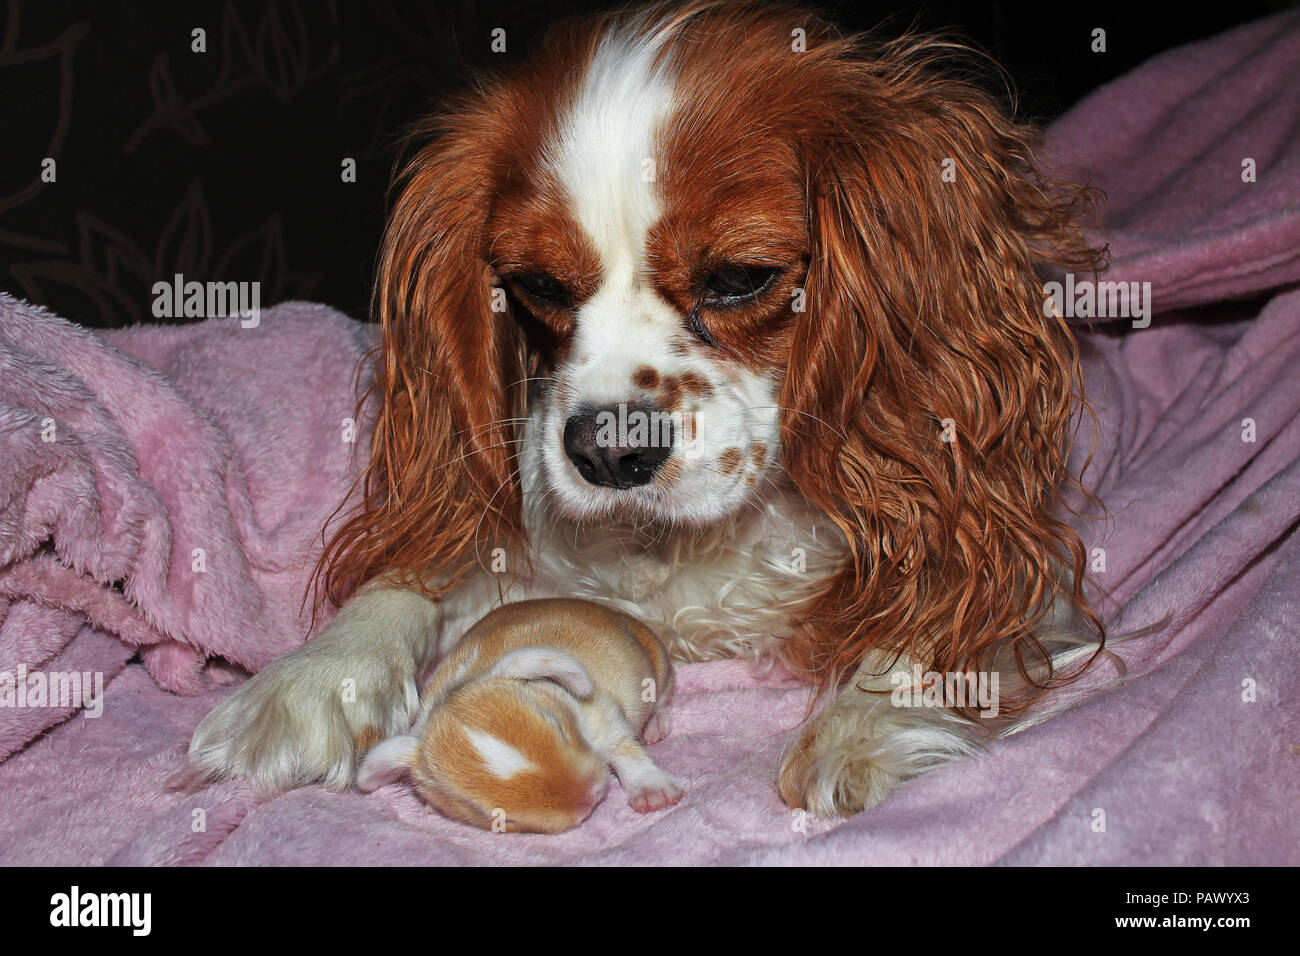 Dog And Baby Bunny New Born Rabbit Kit Cavalier King Charles Spaniel Puppy And Lop Animals Together Cute Stock Photo Alamy